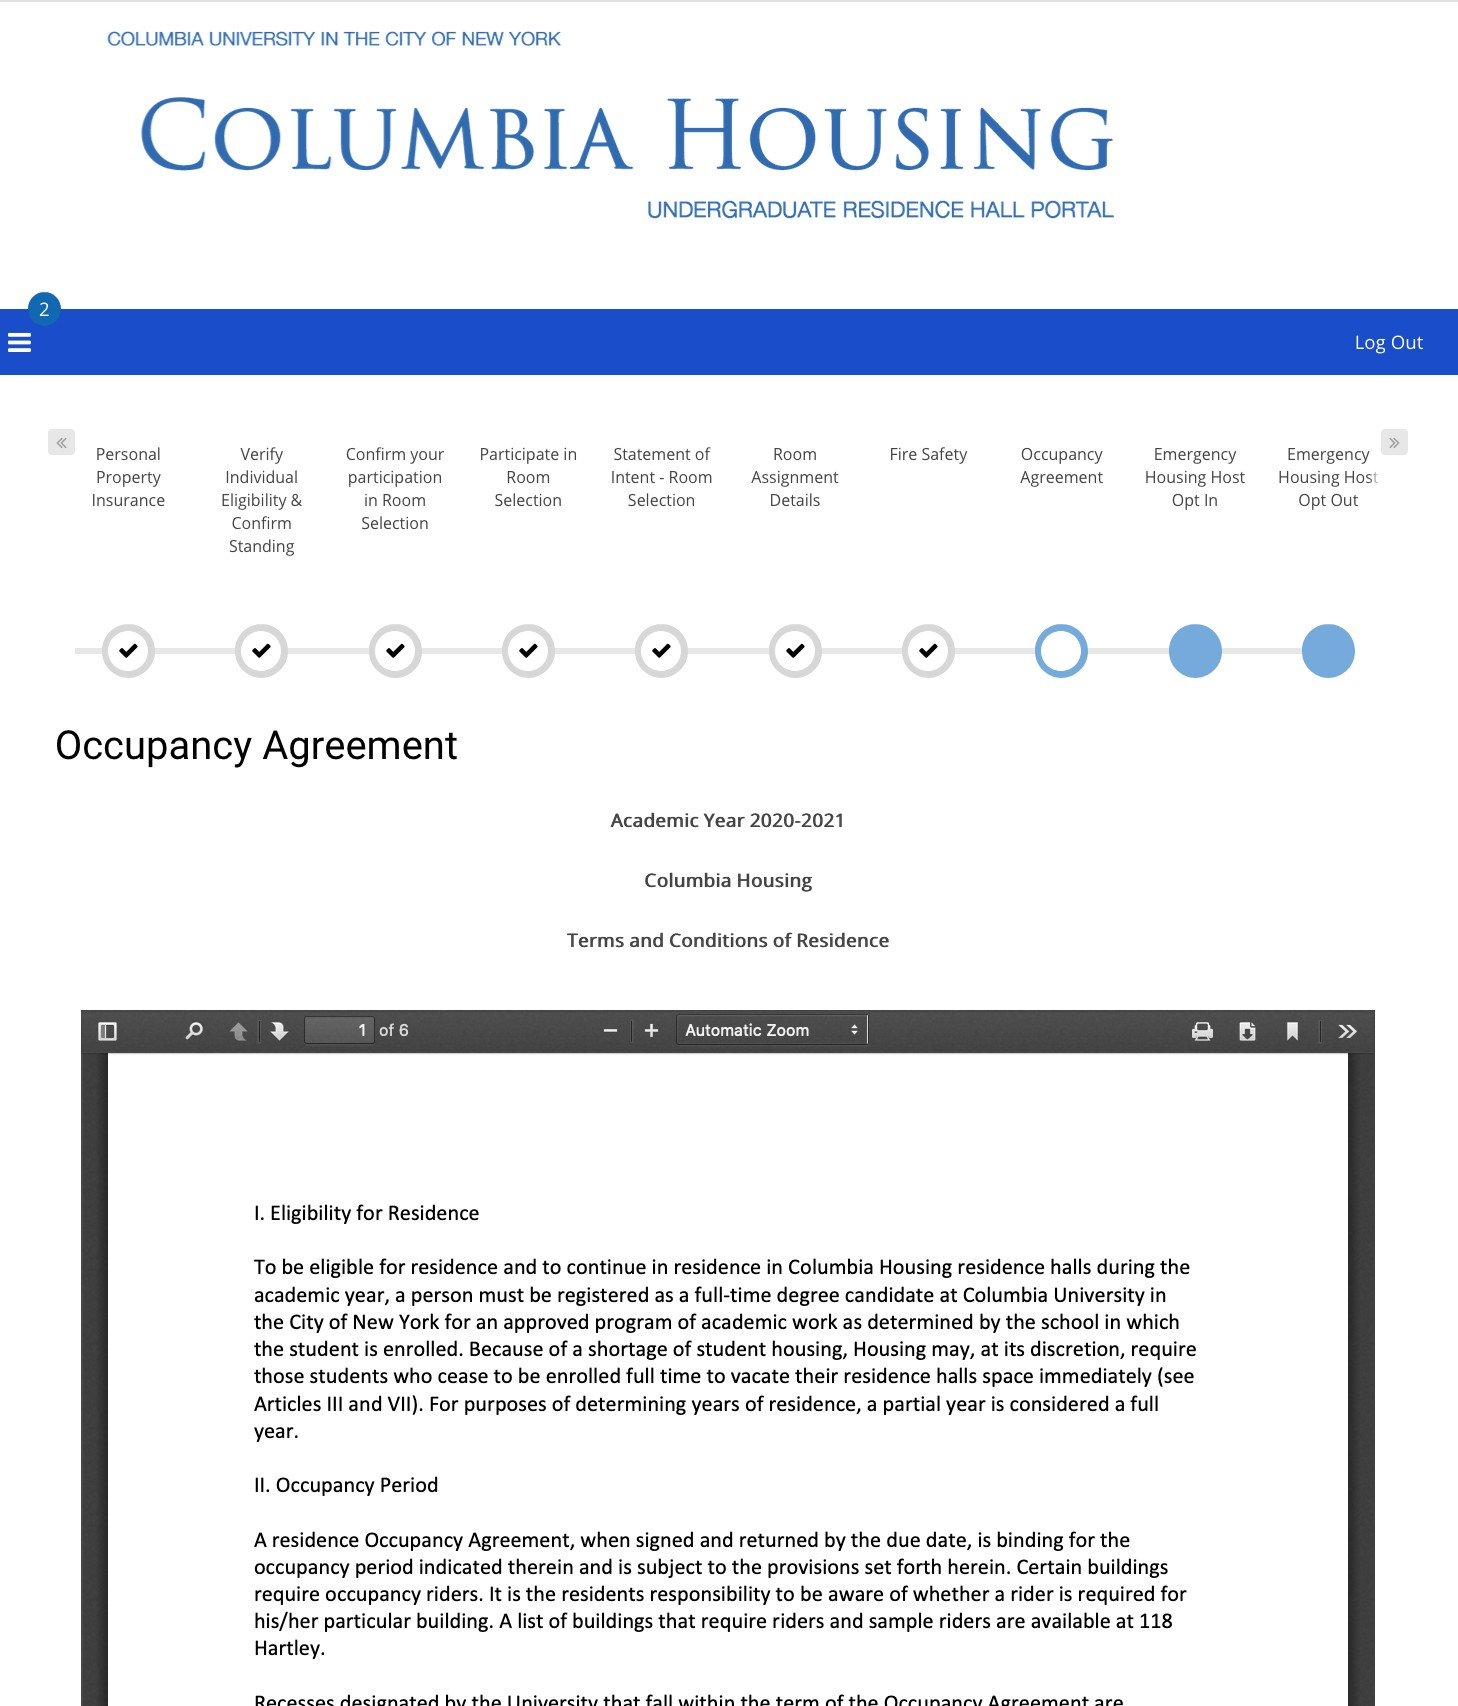 Step 5: Review Occupancy Agreement